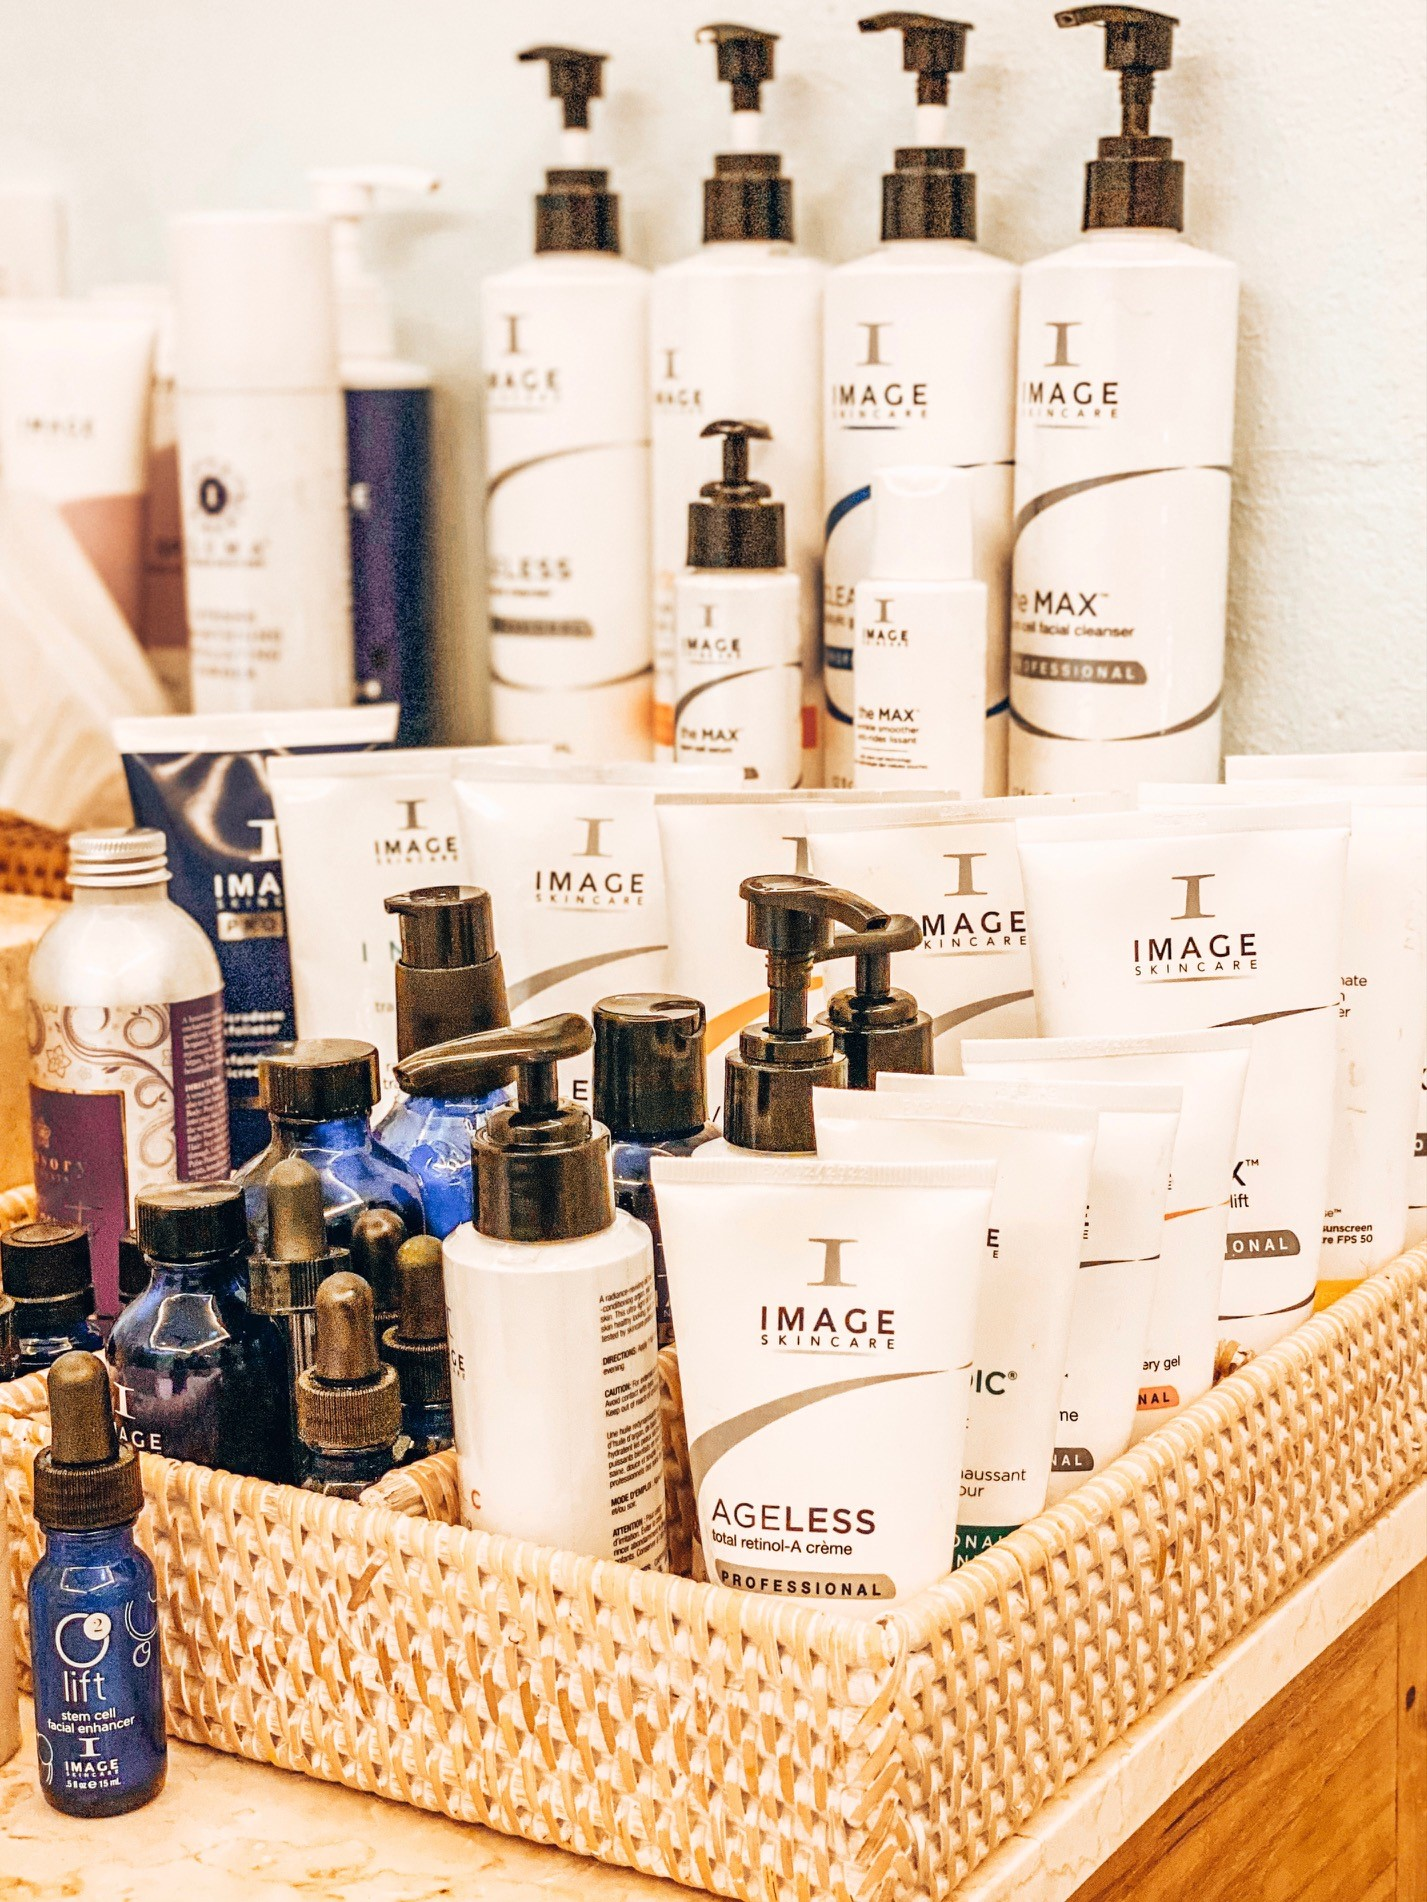 Image Products in the Image O2 Lift Facial at Spa and Sparkle